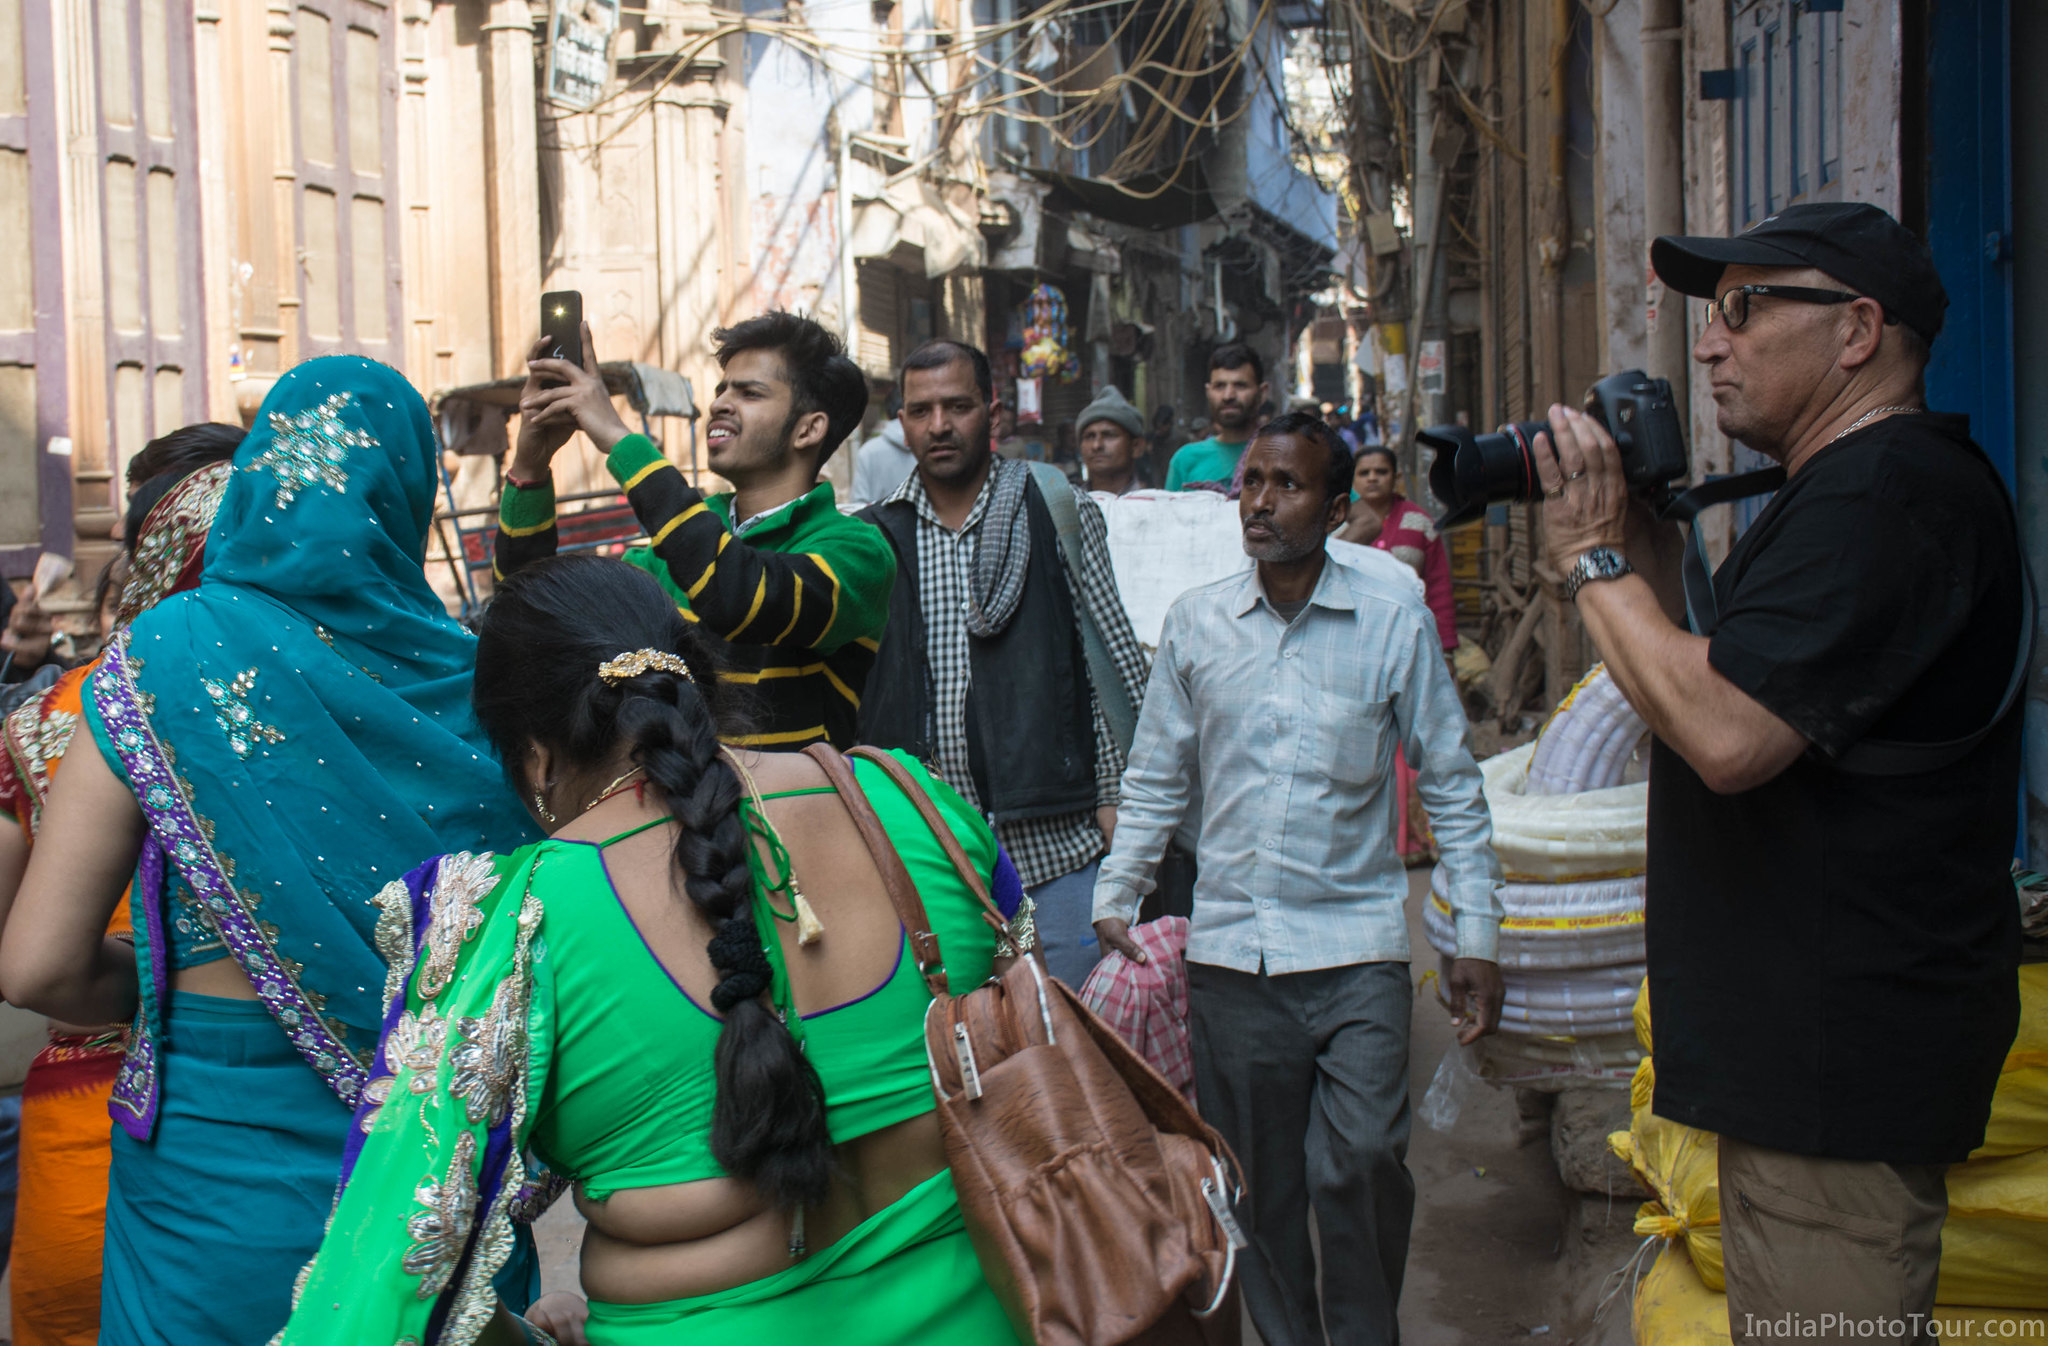 Photographing participants of the baaraat, some of whom were taking own pictures